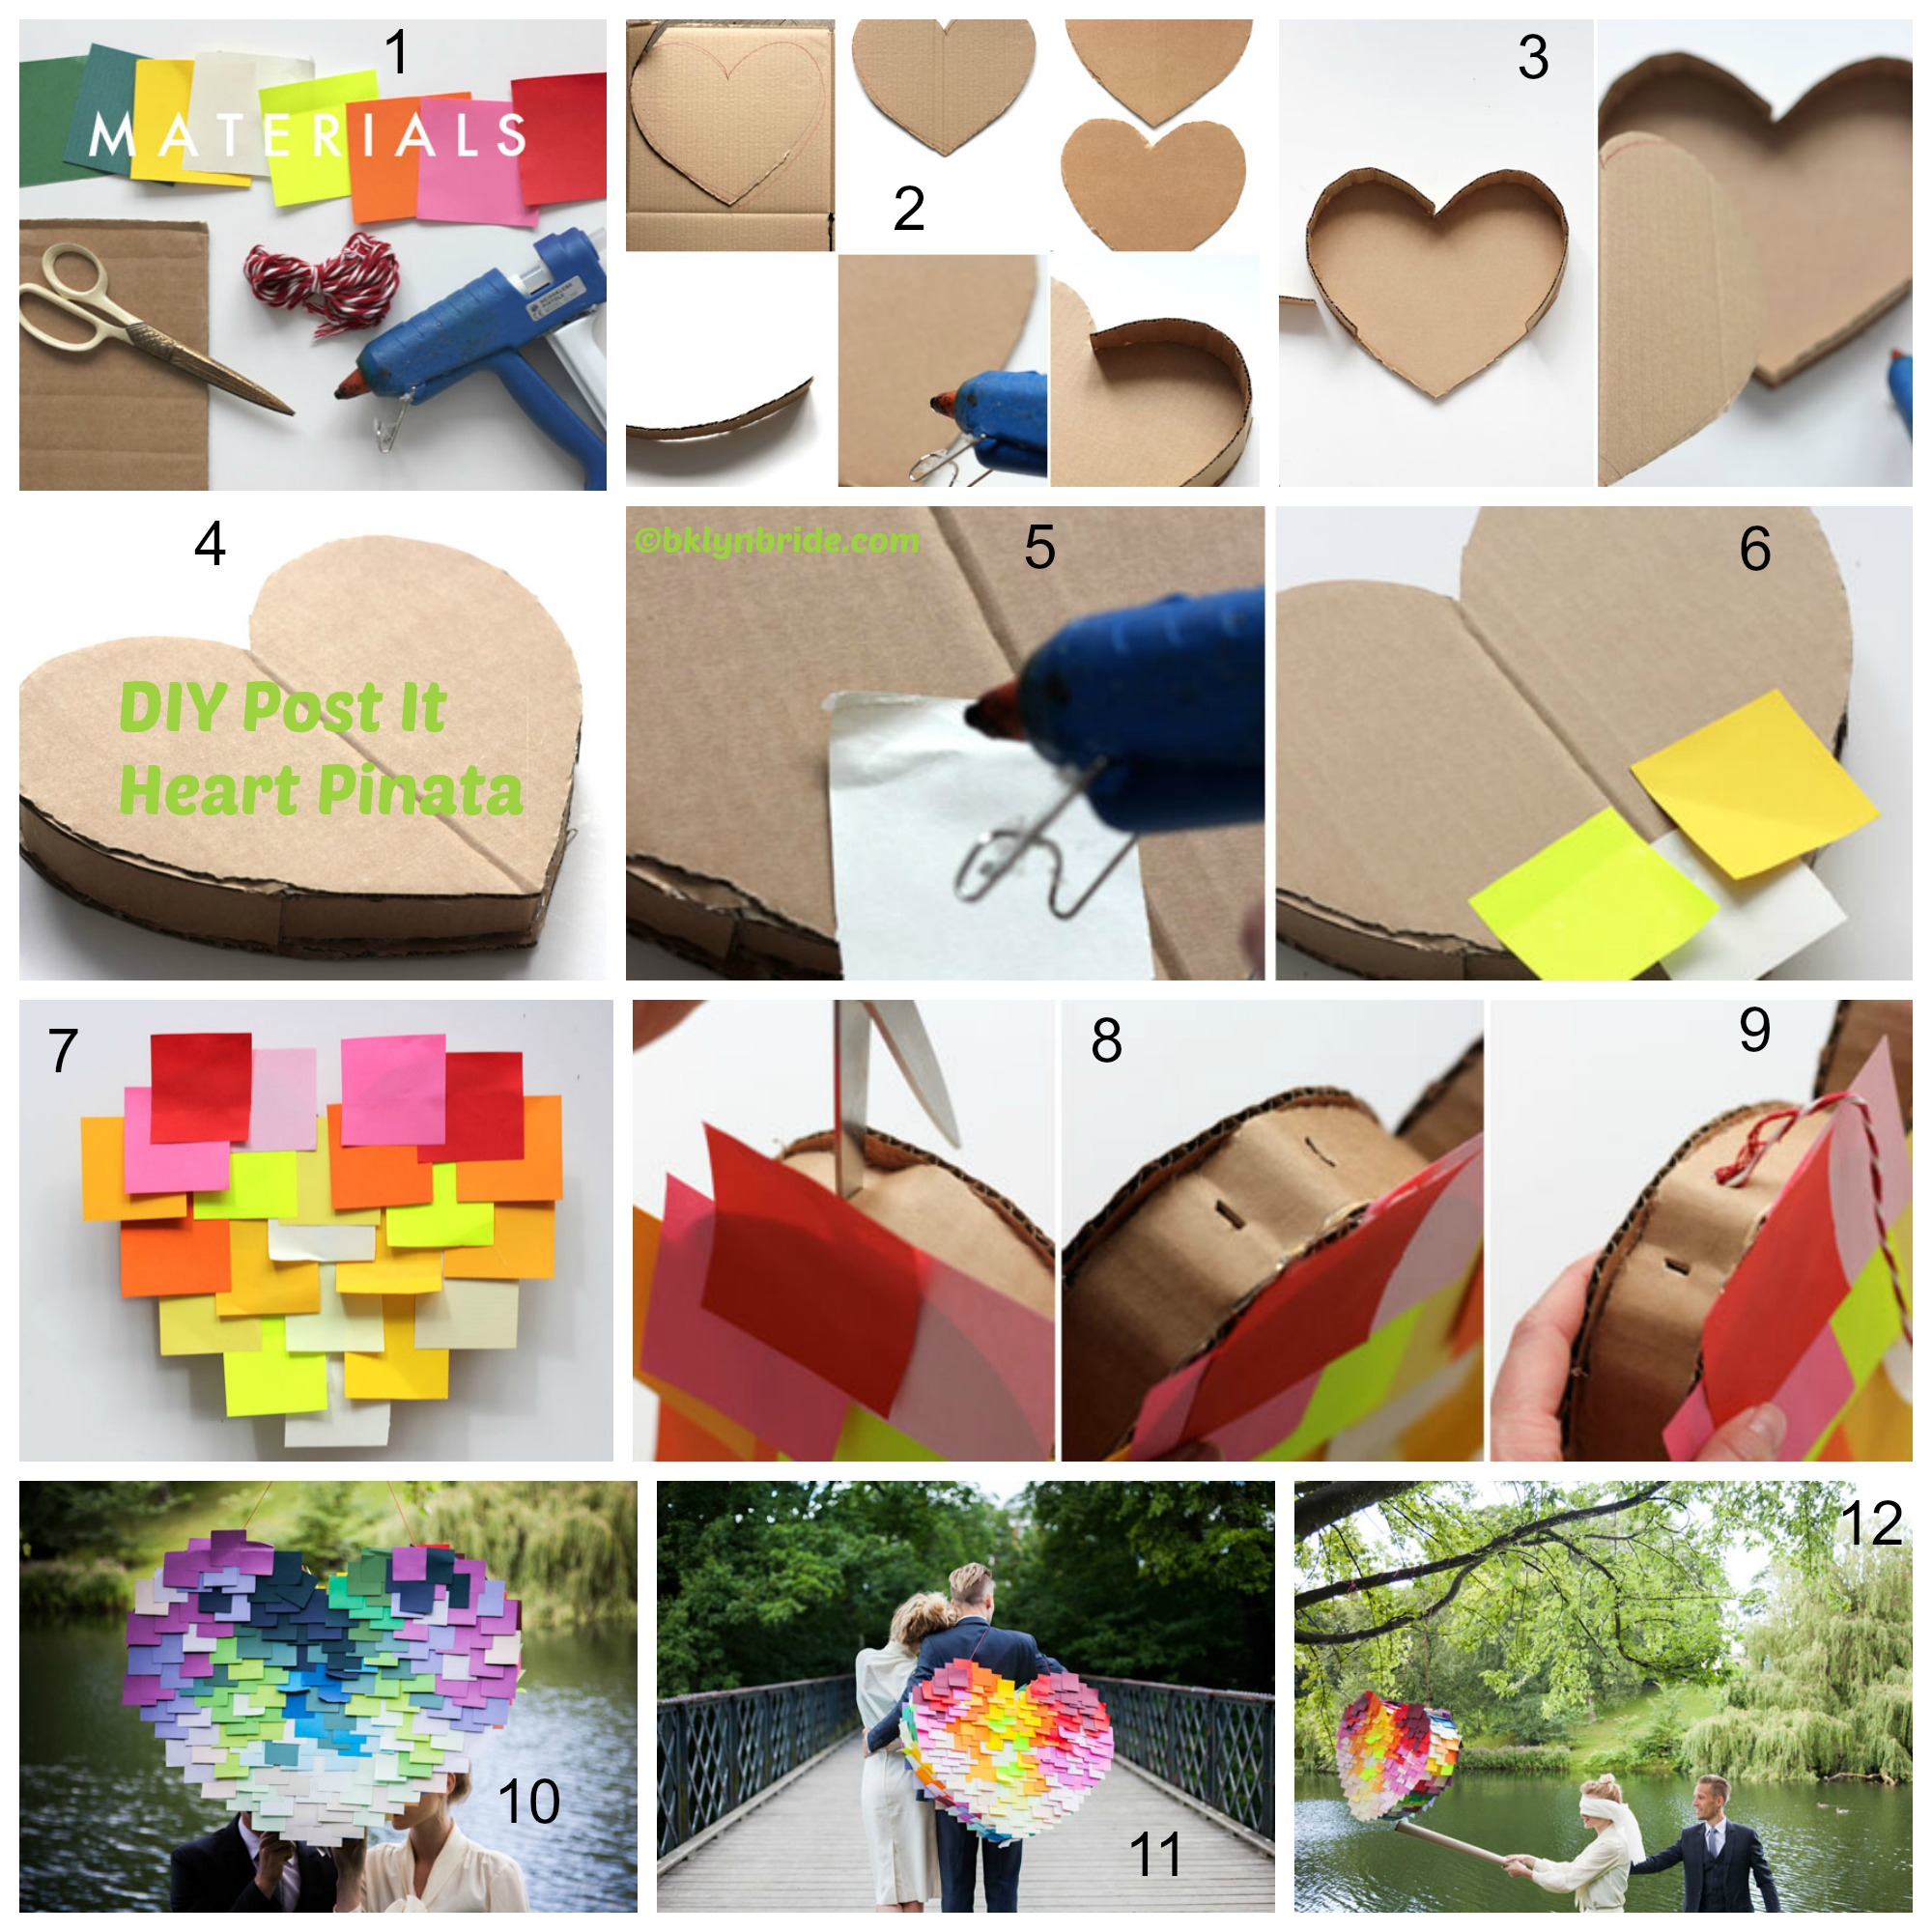 How to make a Post It Heart Pinata